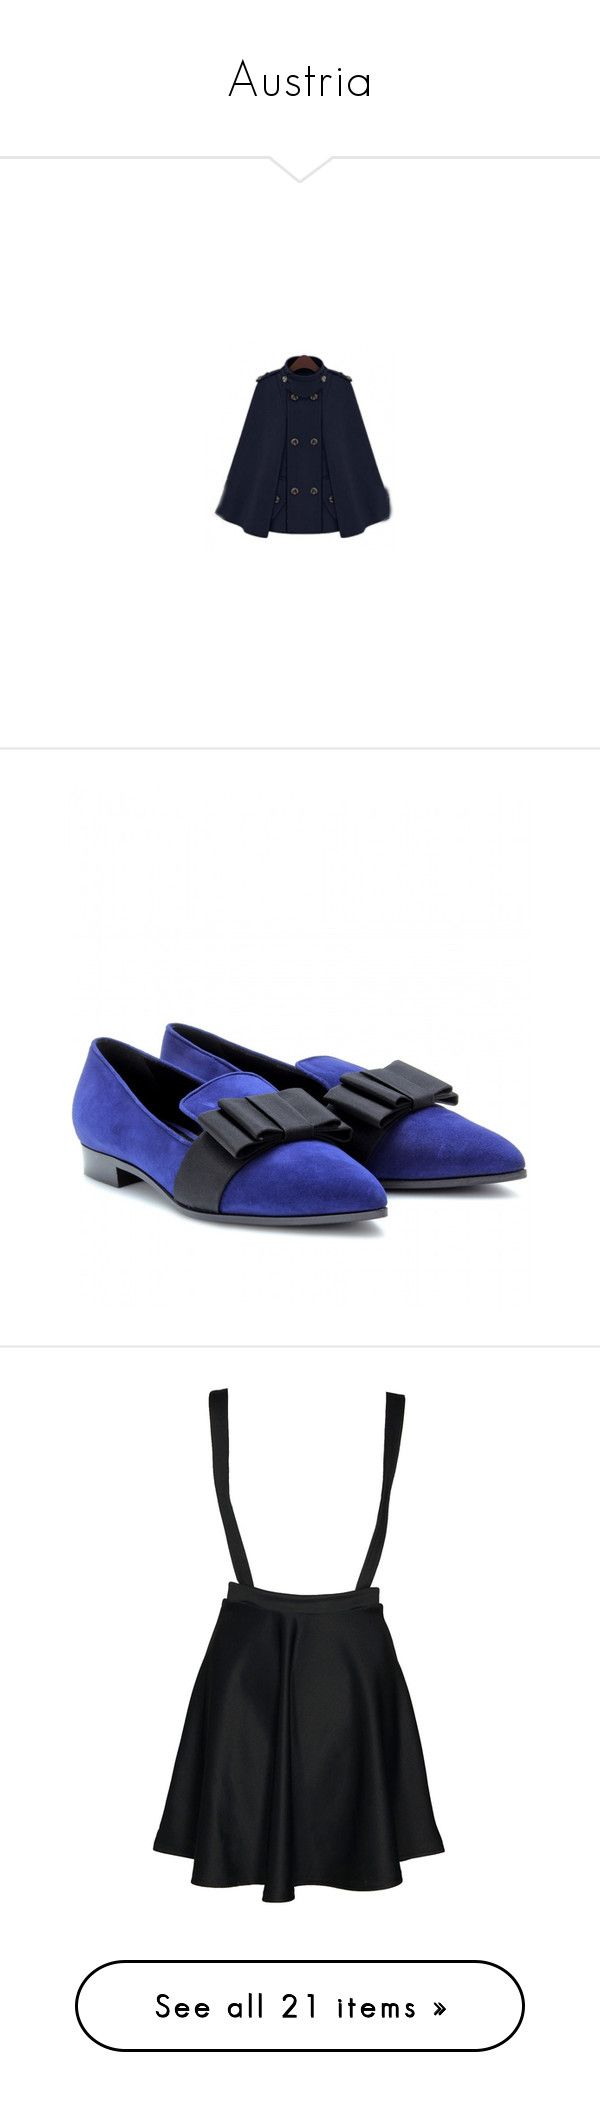 """Austria"" by whiterabbitmadness ❤ liked on Polyvore featuring shoes, suede loafers, slippers shoes, black loafers, blue suede shoes, kohl shoes, skirts, bottoms, dresses and saias"